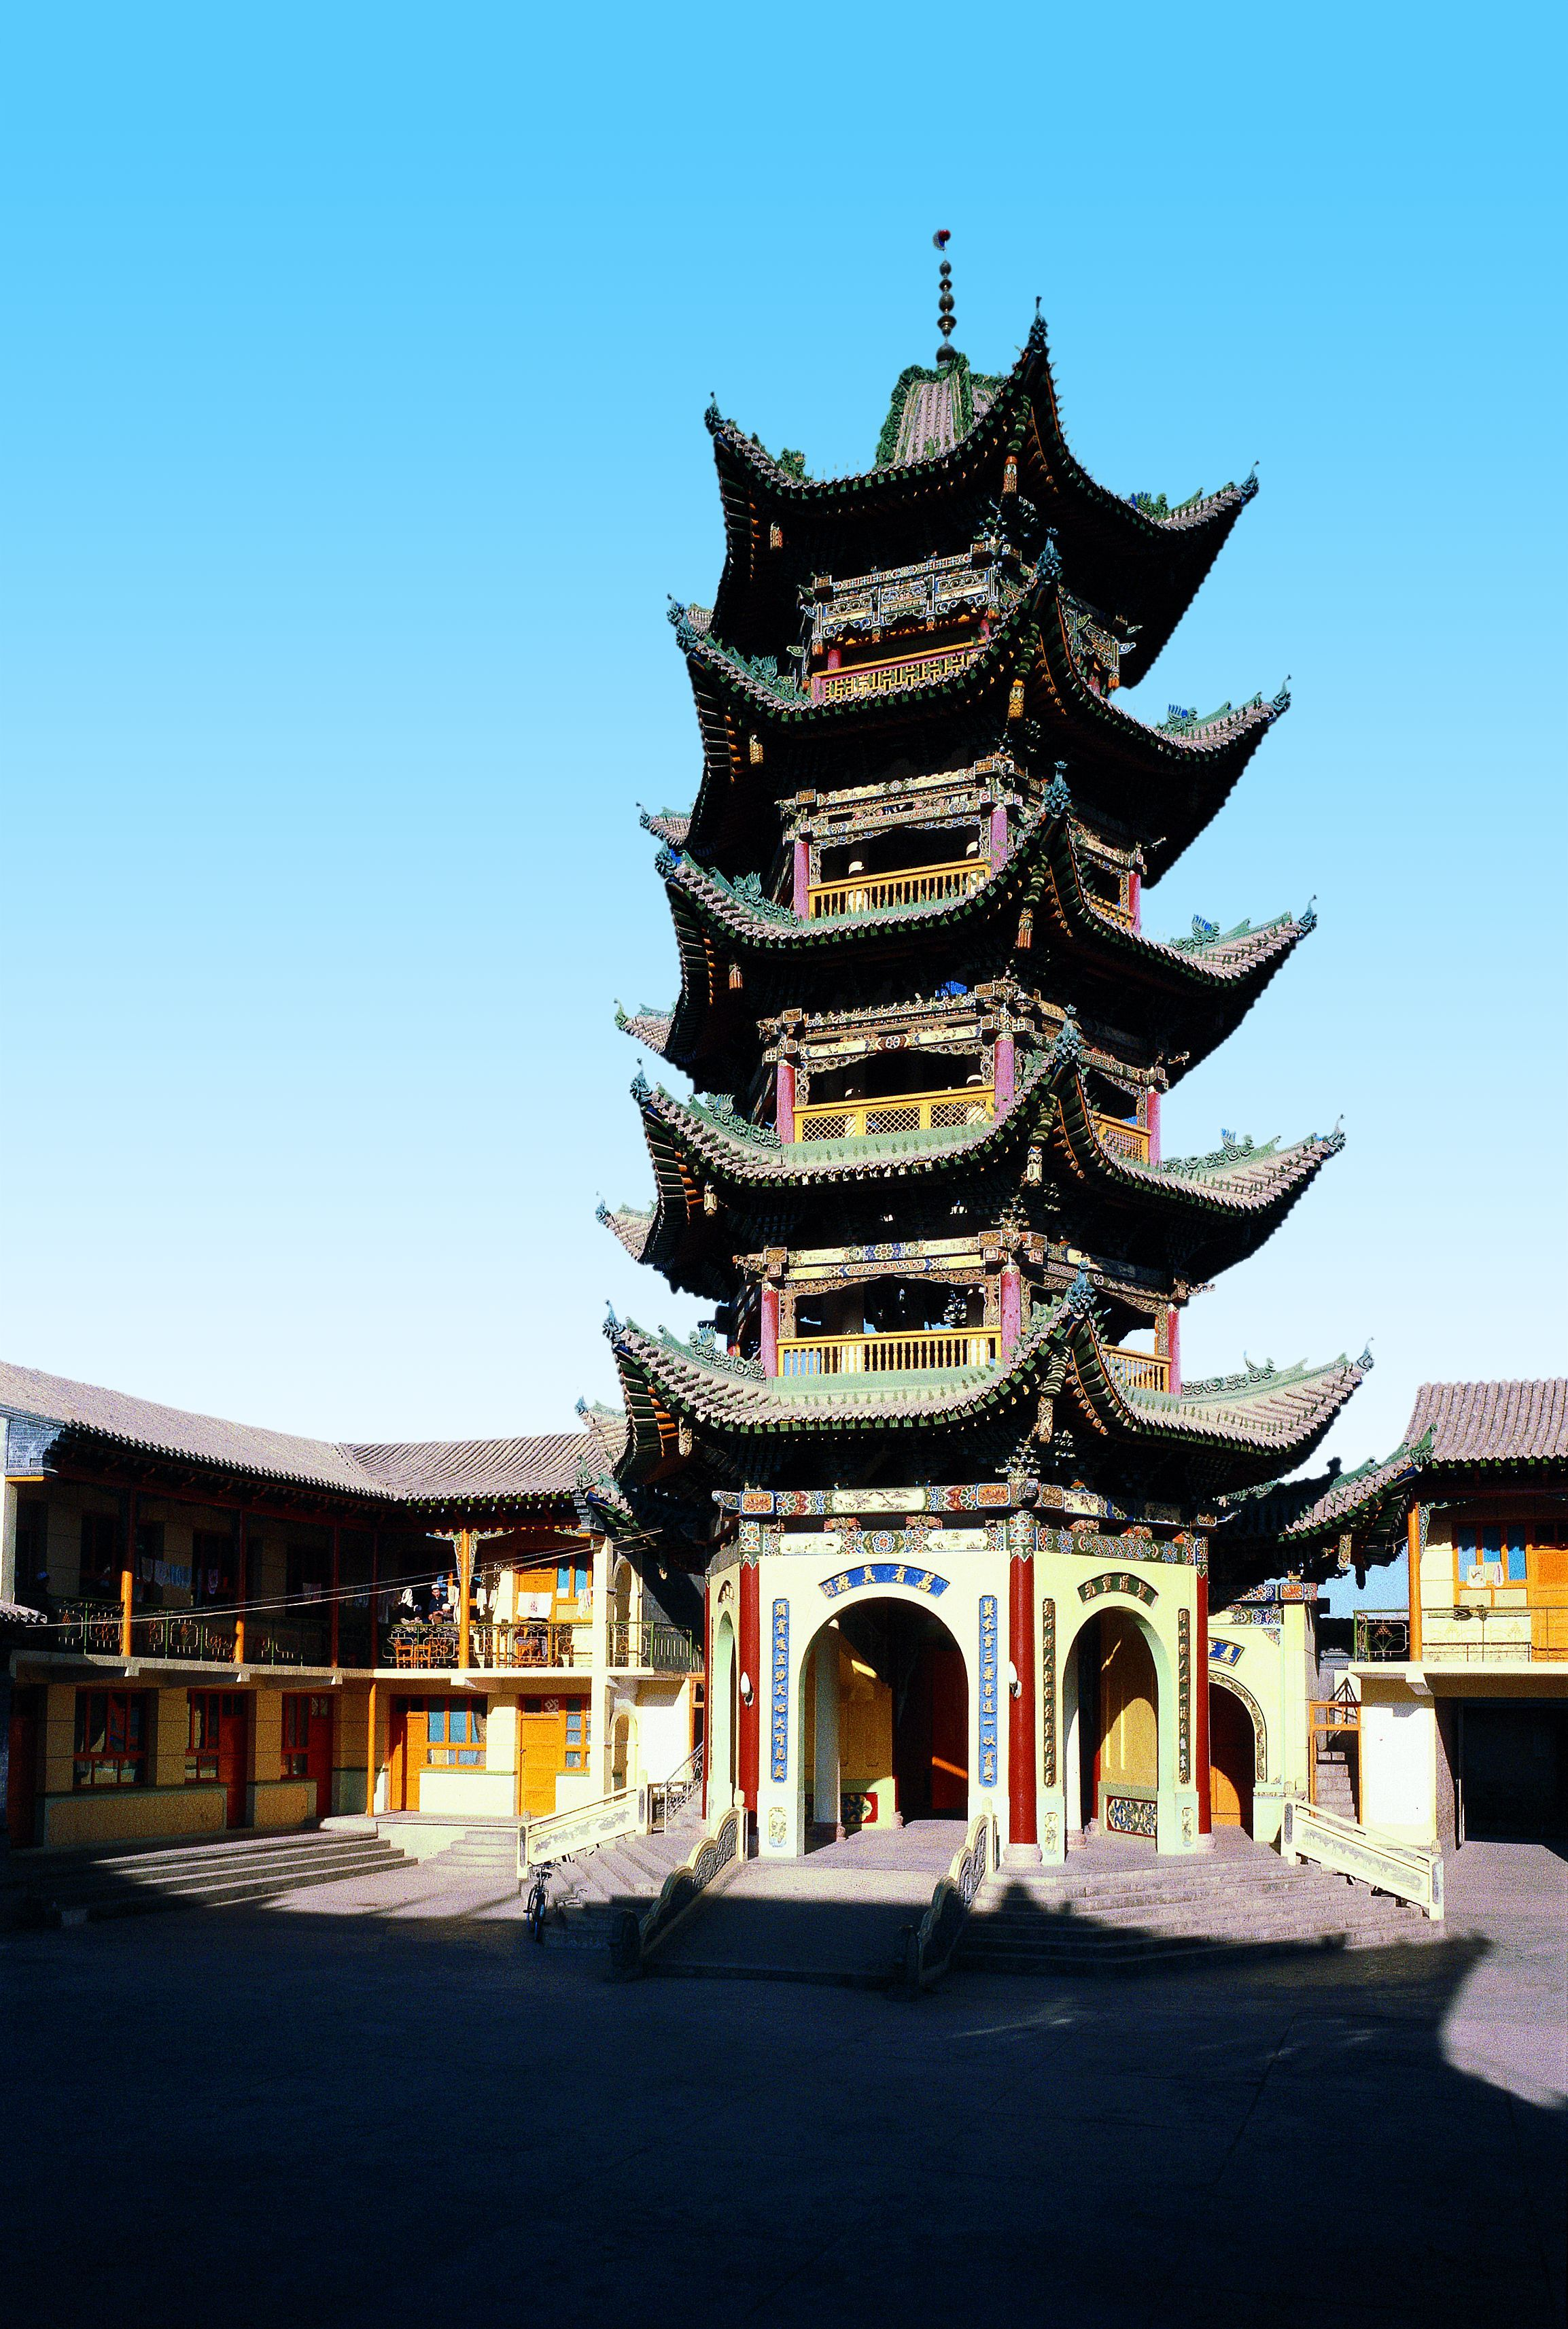 The Bangke Tower In The Laowang Mosque, A Five Story,